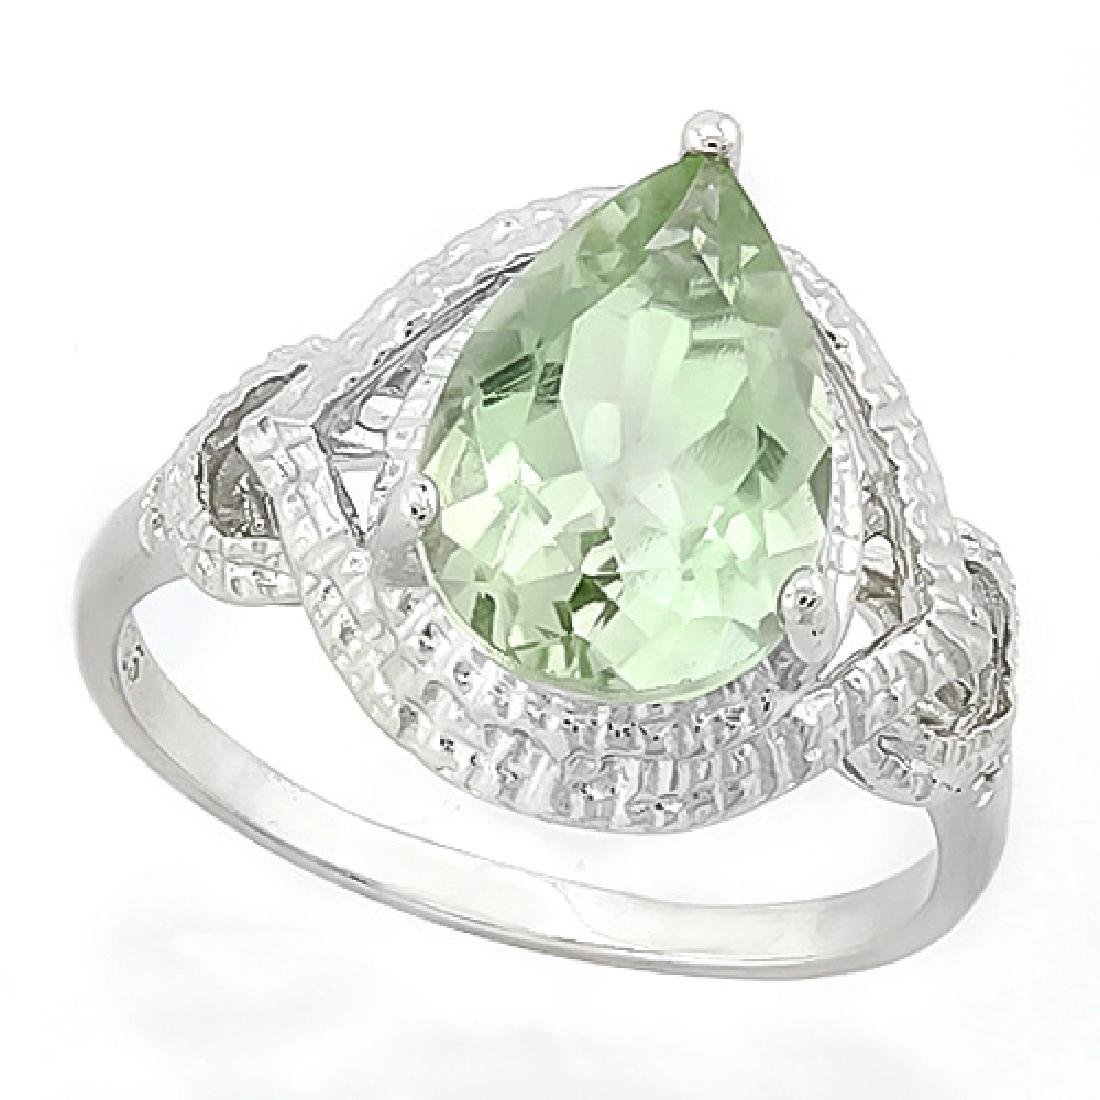 Green Amethyst Statement Ring with Diamonds in Sterling